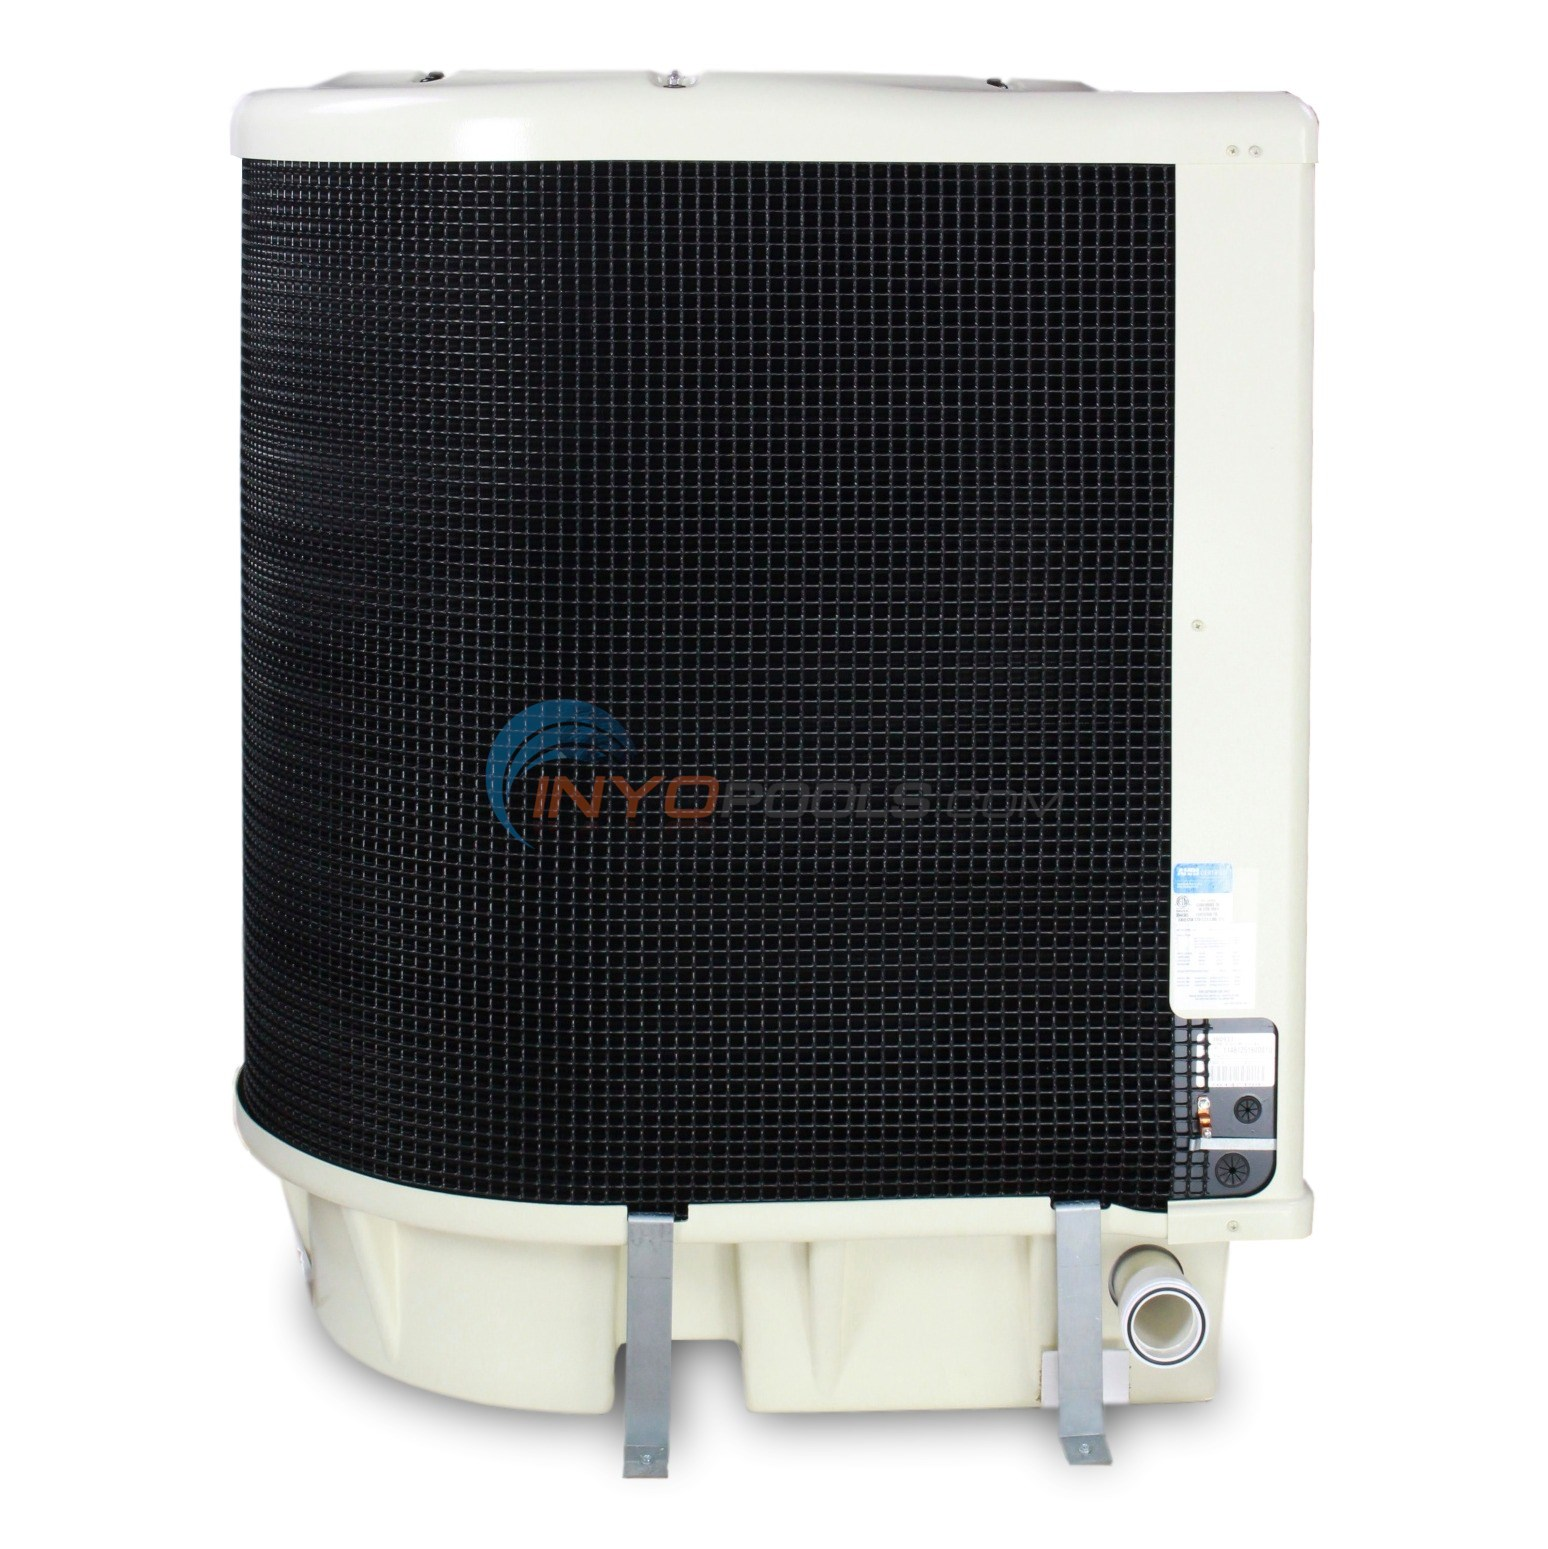 Pentair Heat Pump 125,000 BTU UltraTemp 120 - 460933